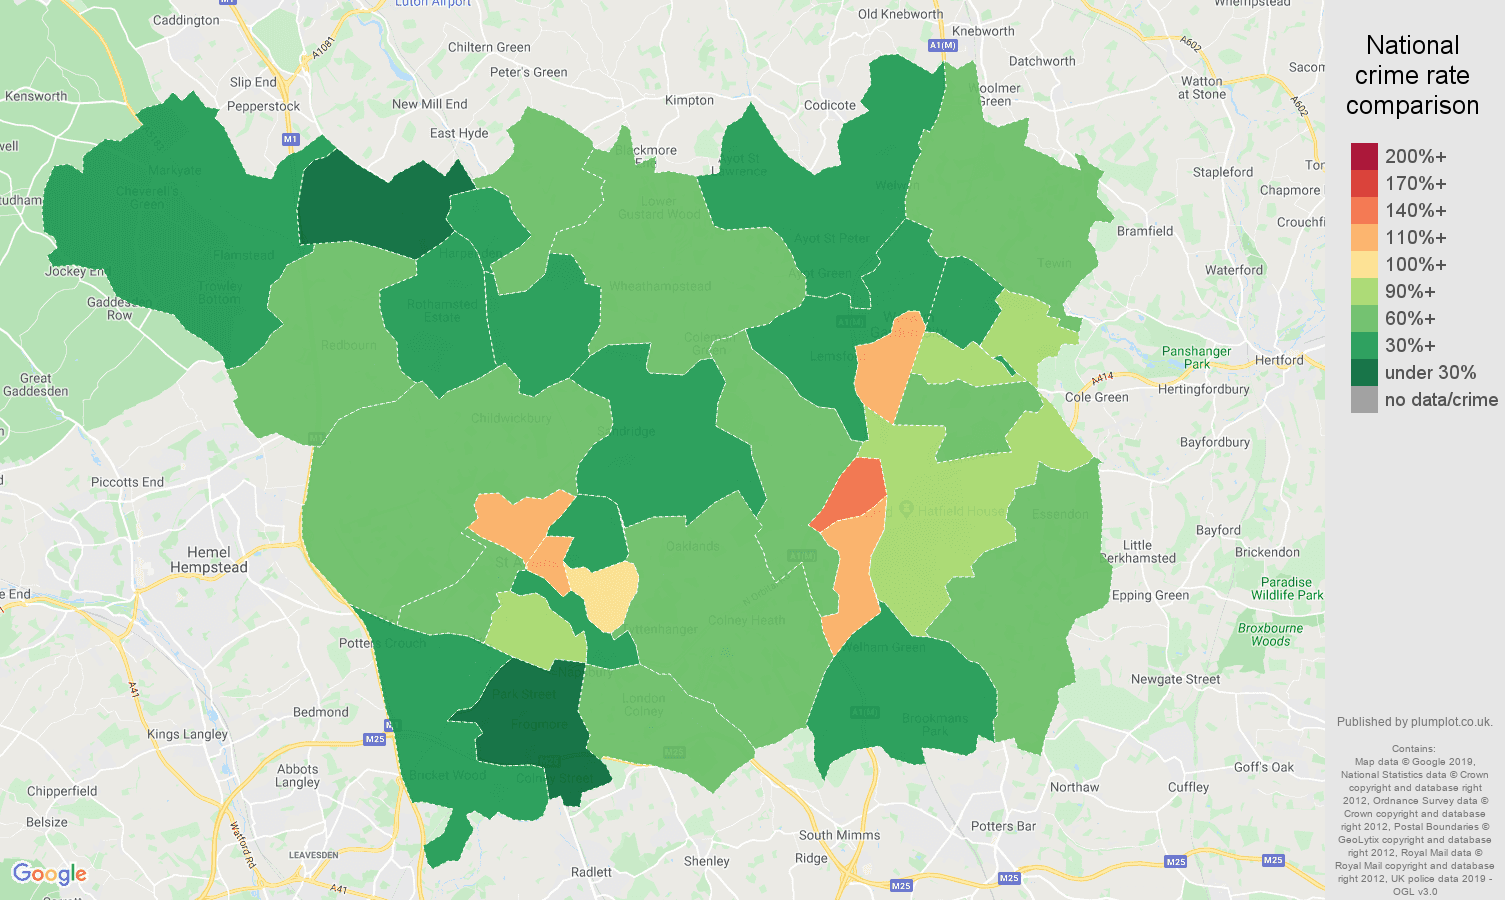 St Albans public order crime rate comparison map